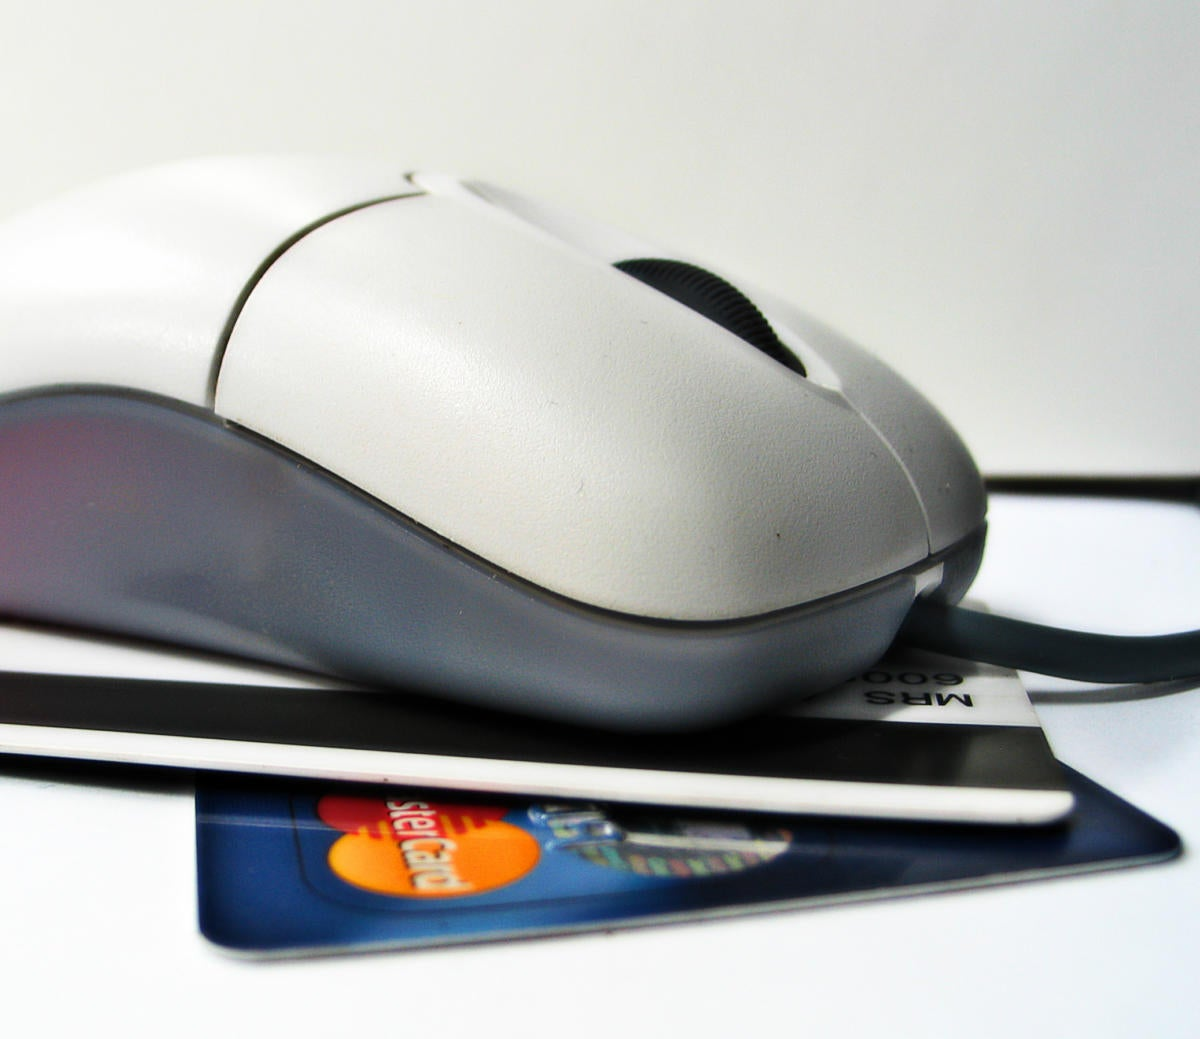 Hackers infected almost 6,000 online shops with payment card stealing code.